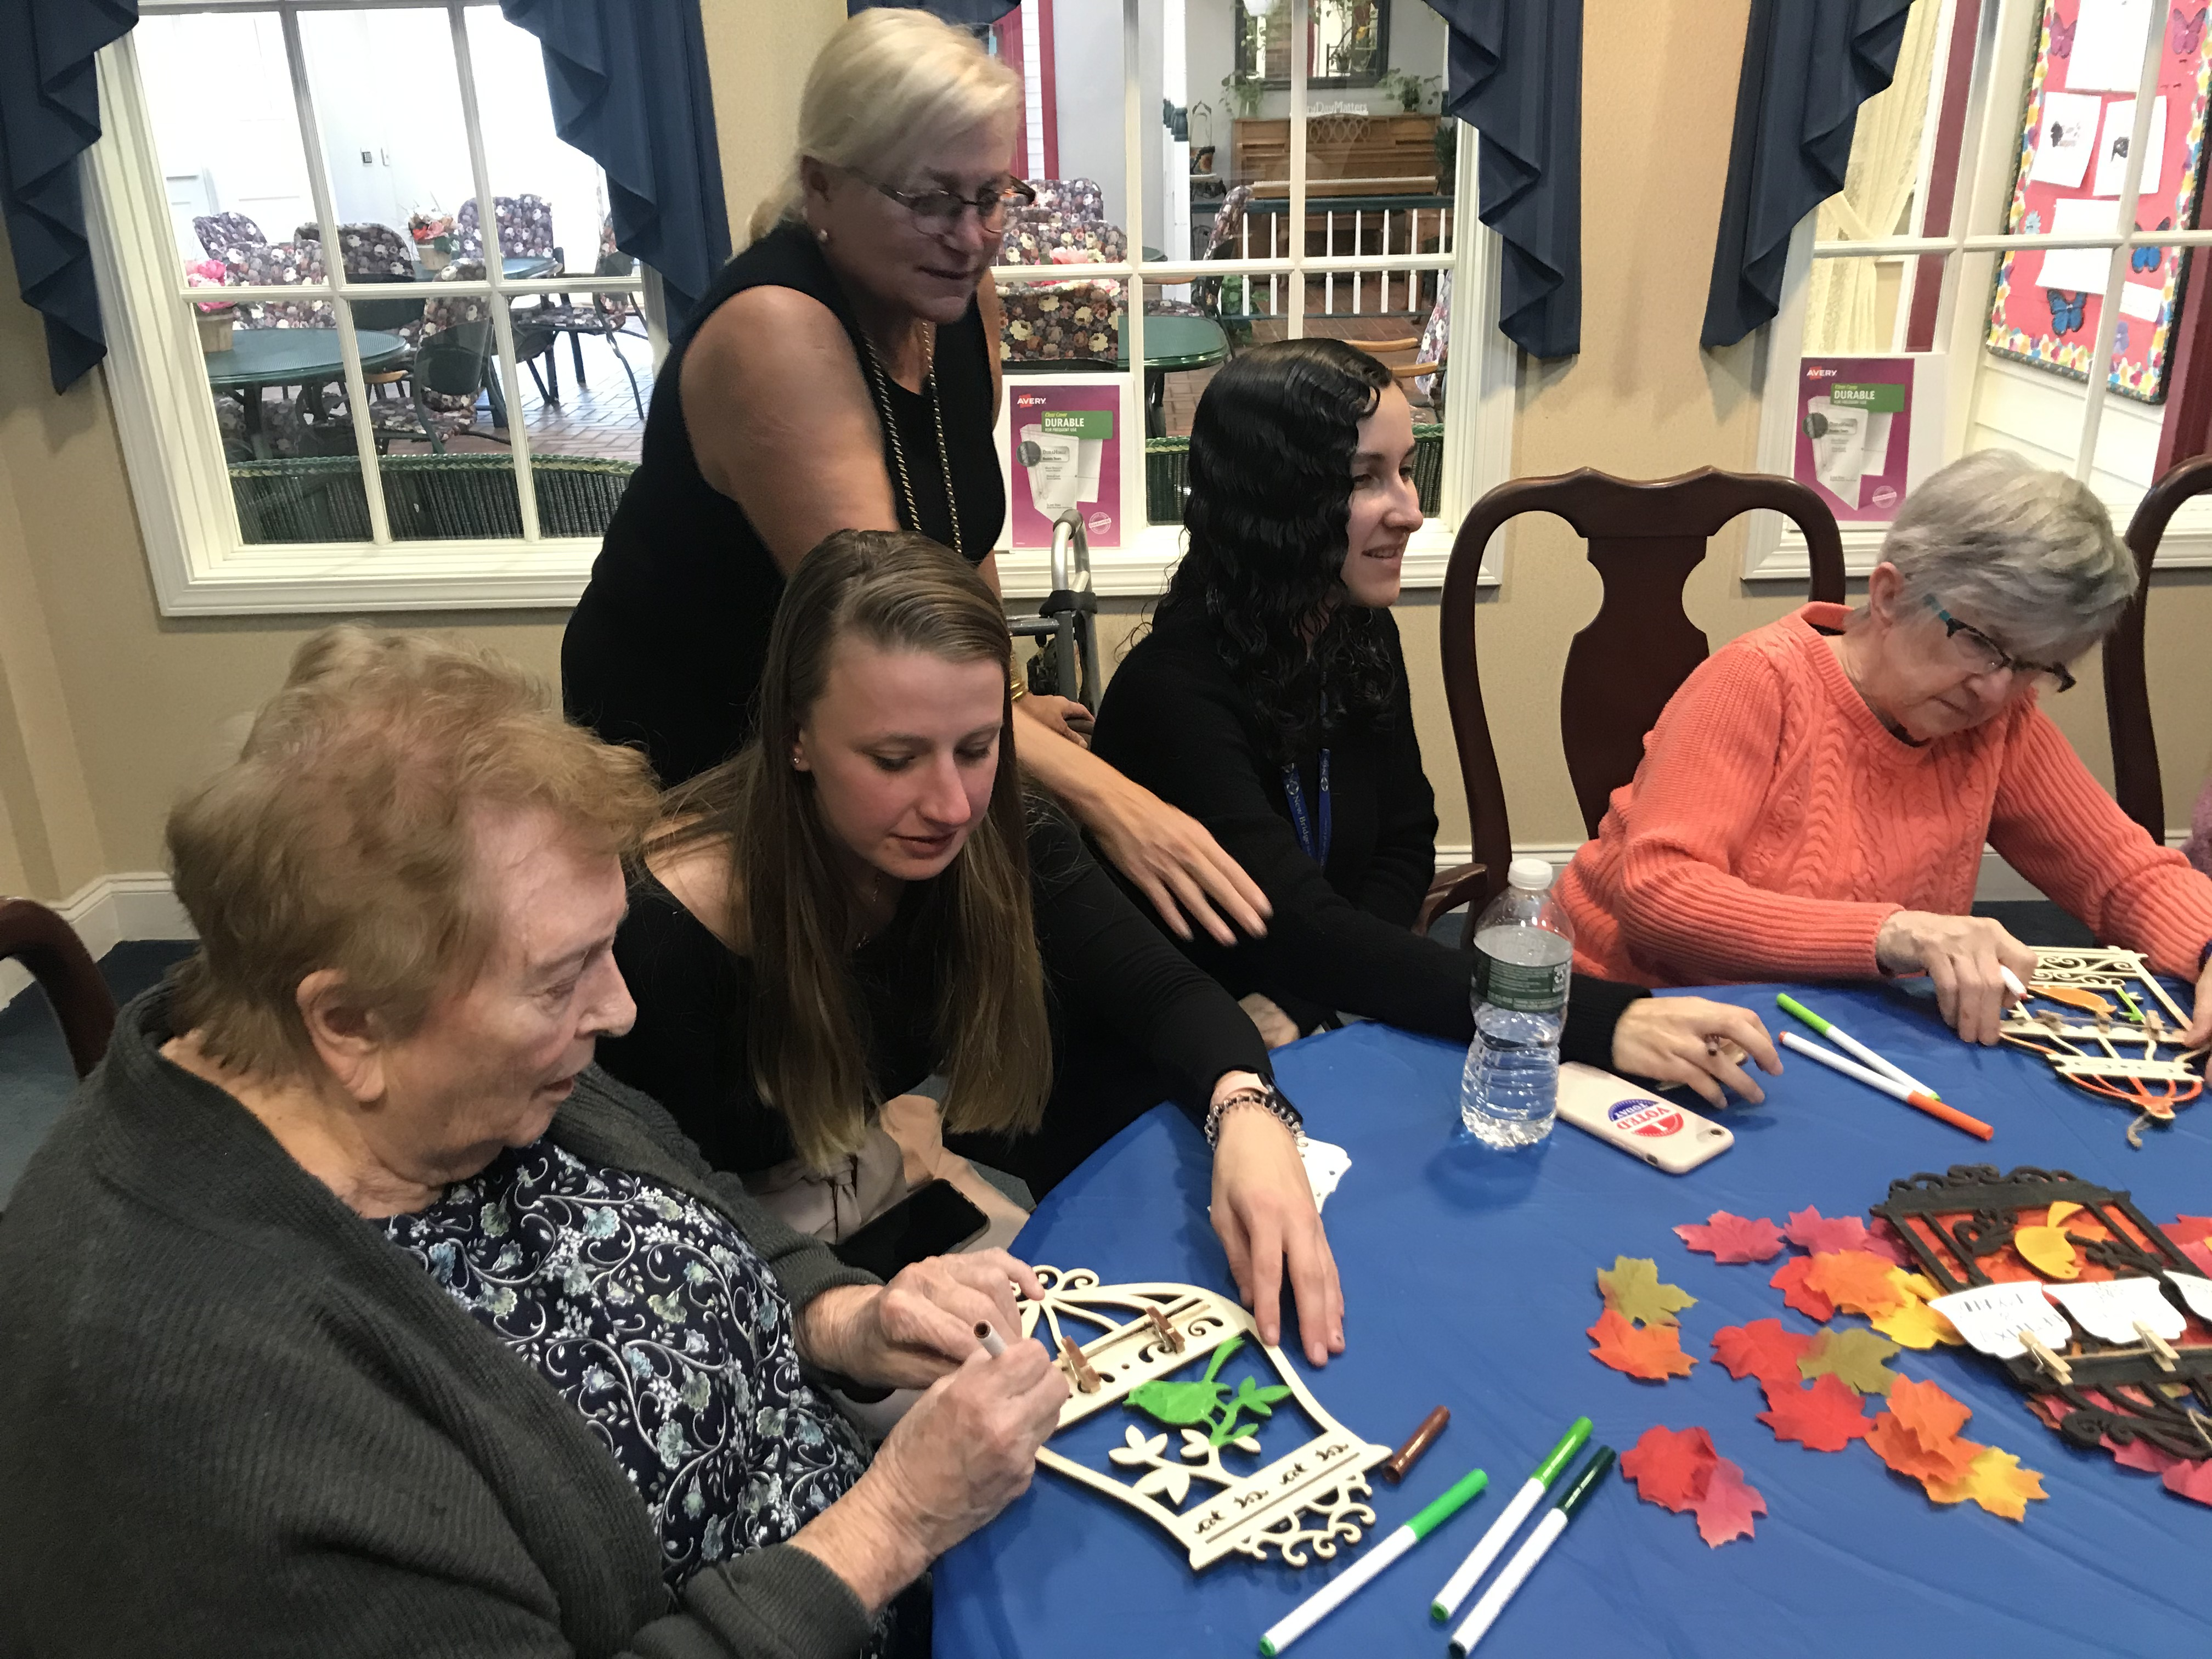 Two STAC Therapeutic Recreation students sitting with participants in a senior center working on arts and crafts fall season project. Leaves; coloring bird house wall decor with markers; Dr. Levine-Madori standing and observing